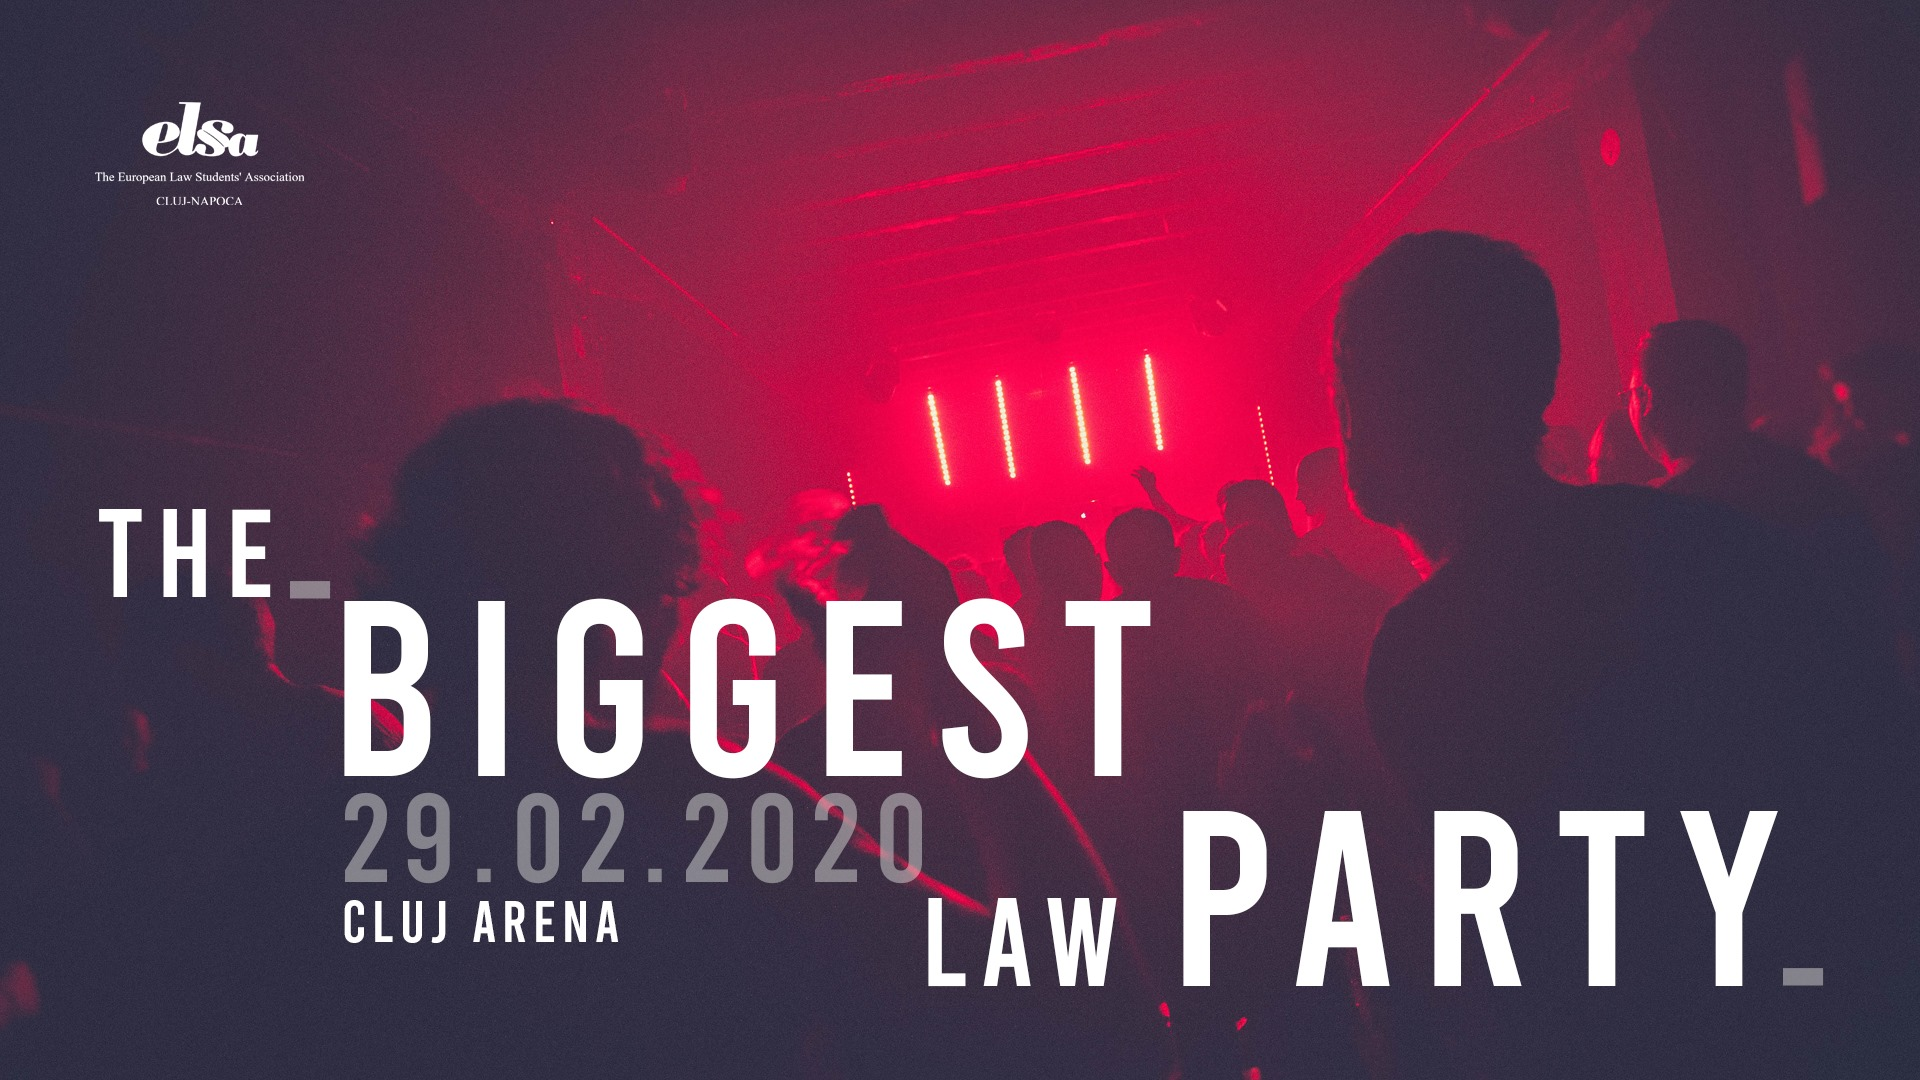 The Biggest Law Party